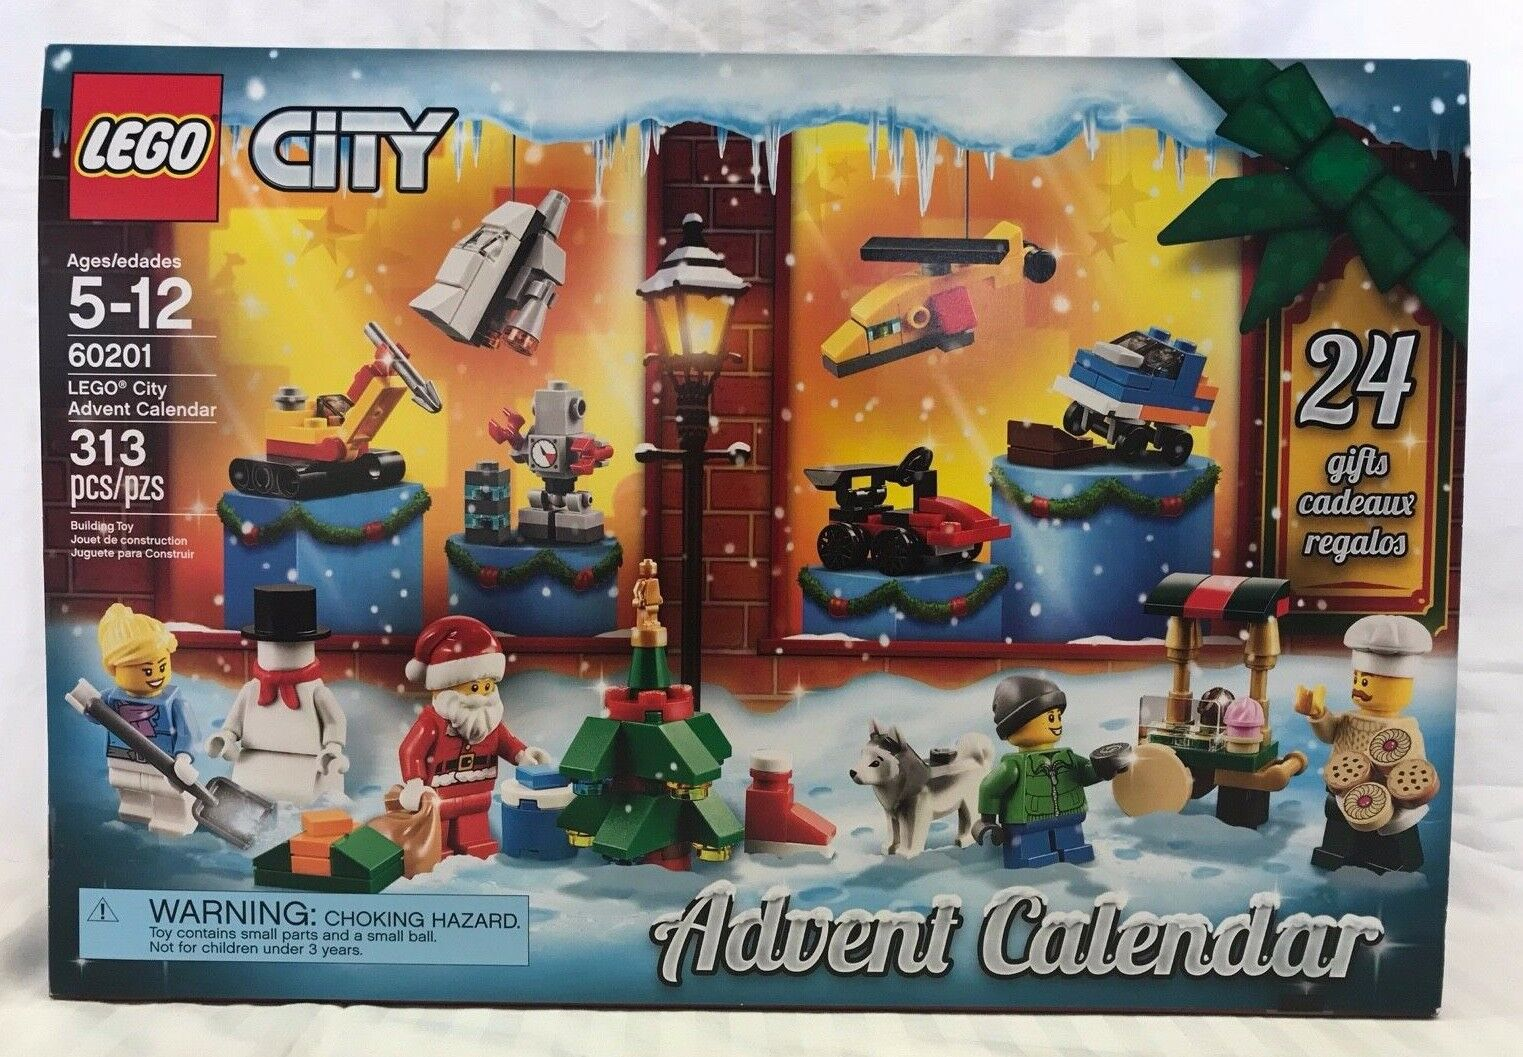 LEGO CITY 2018 ADVENT CALENDAR SET 60201 - 24 LEGO GIFTS NEW CHRISTMAS